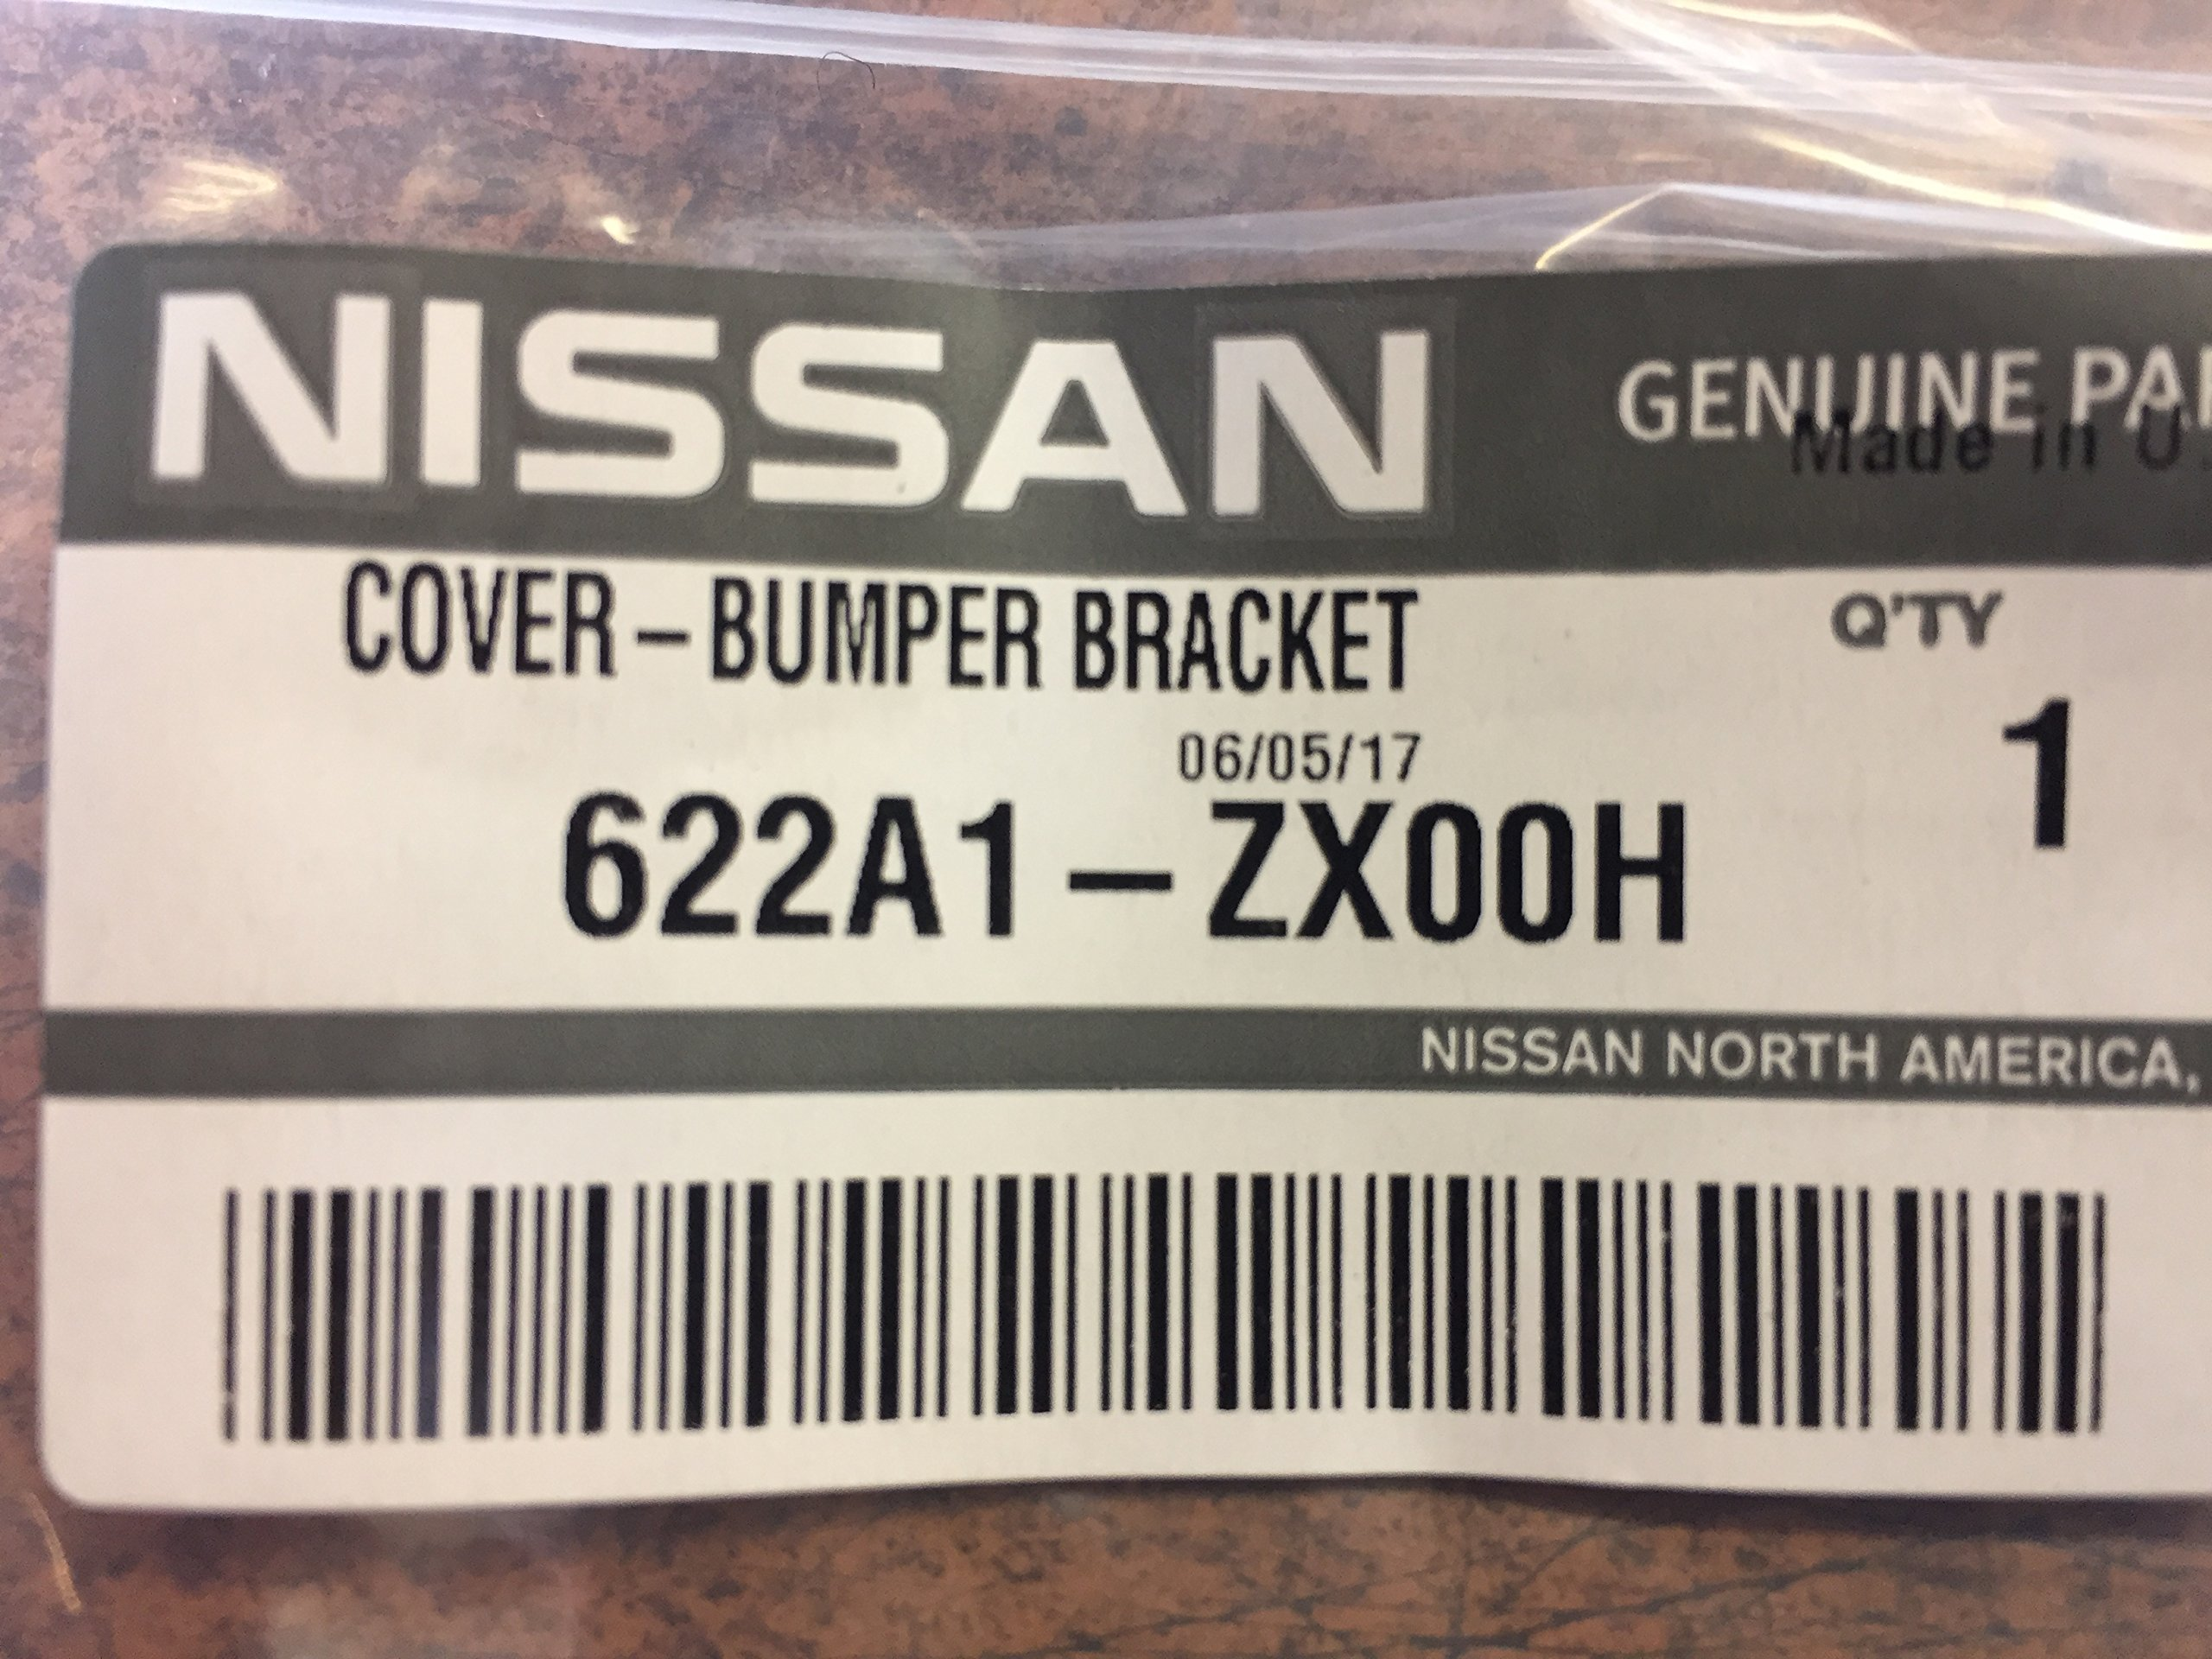 NEW OEM NISSAN ALTIMA SEDAN 2010-2012 FRONT BUMPER UNPAINTED TOW HOOK COVER by Nissan (Image #3)